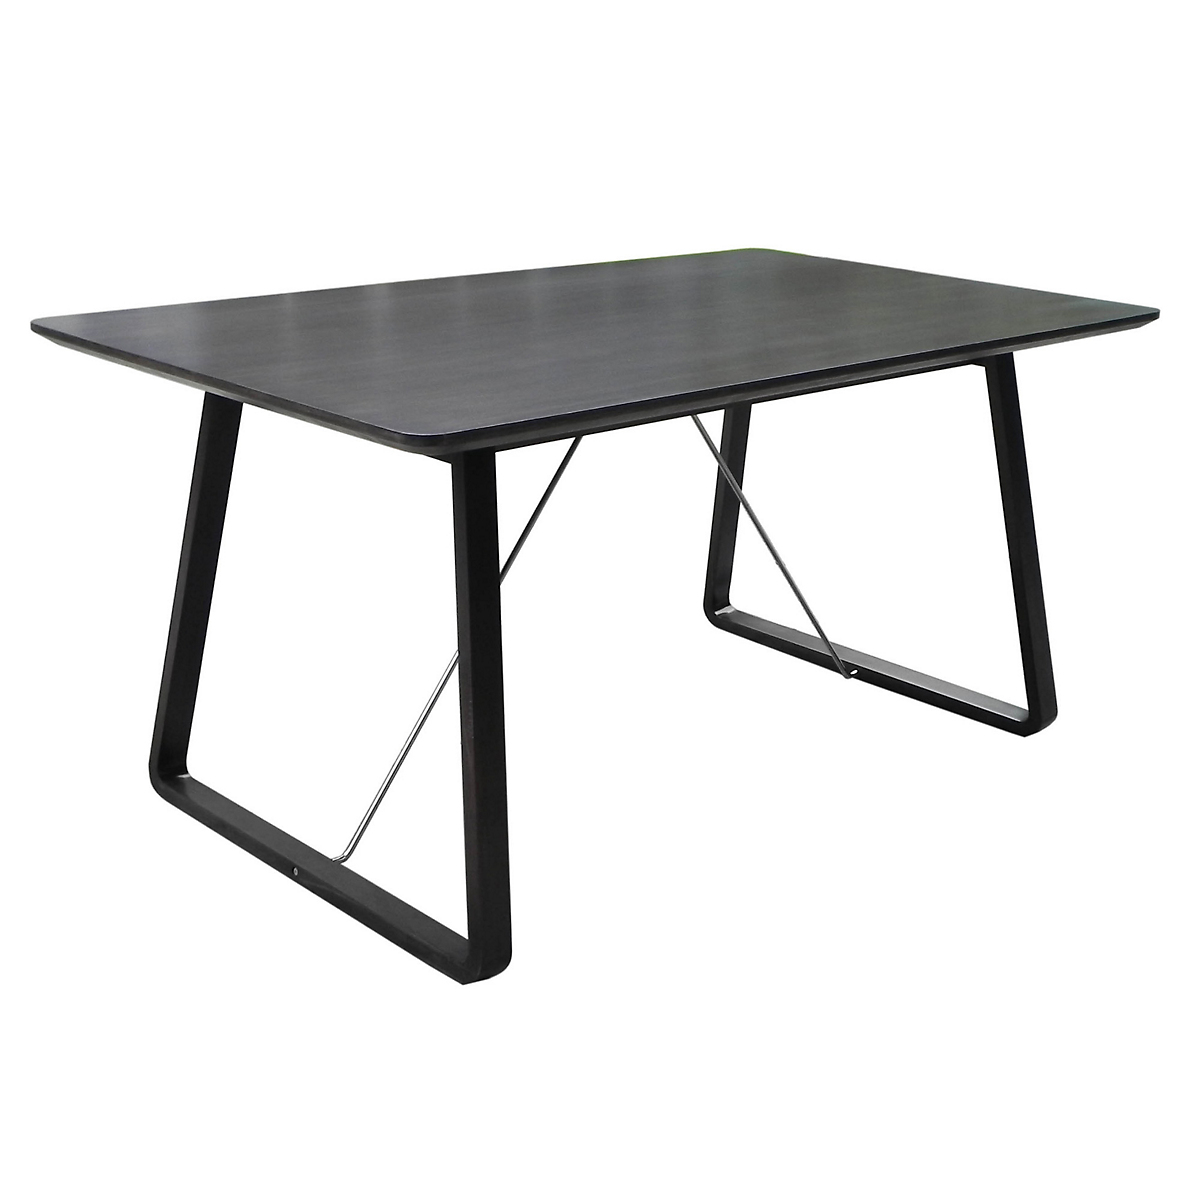 Maria Yee Solvang Dining Table